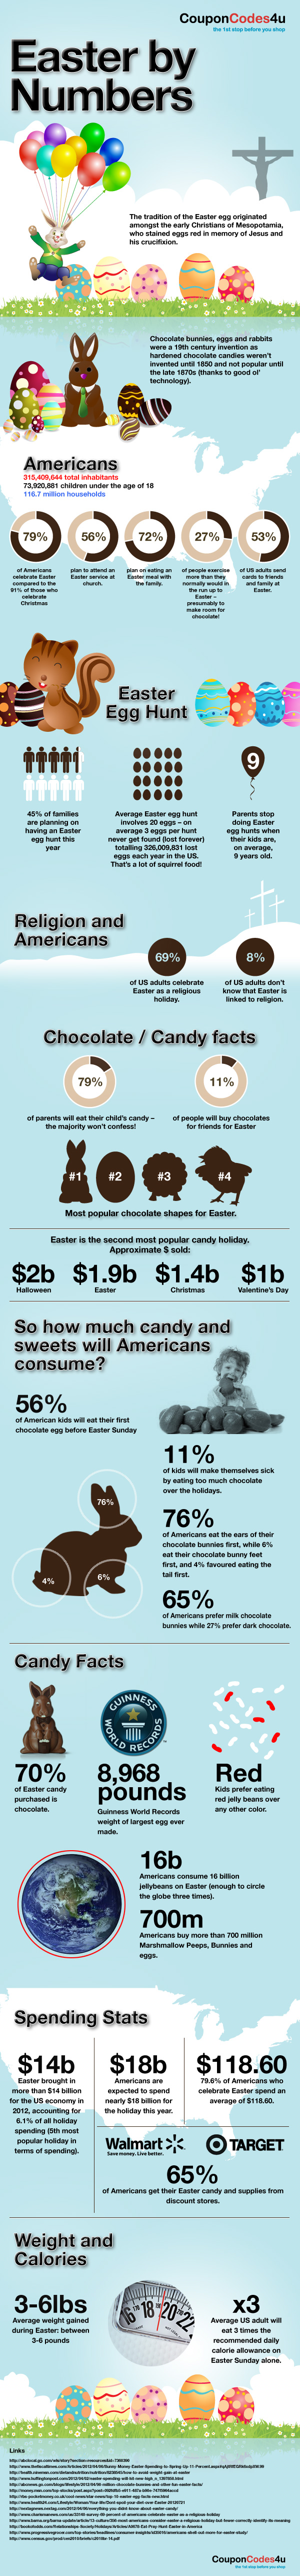 Facts About Easter